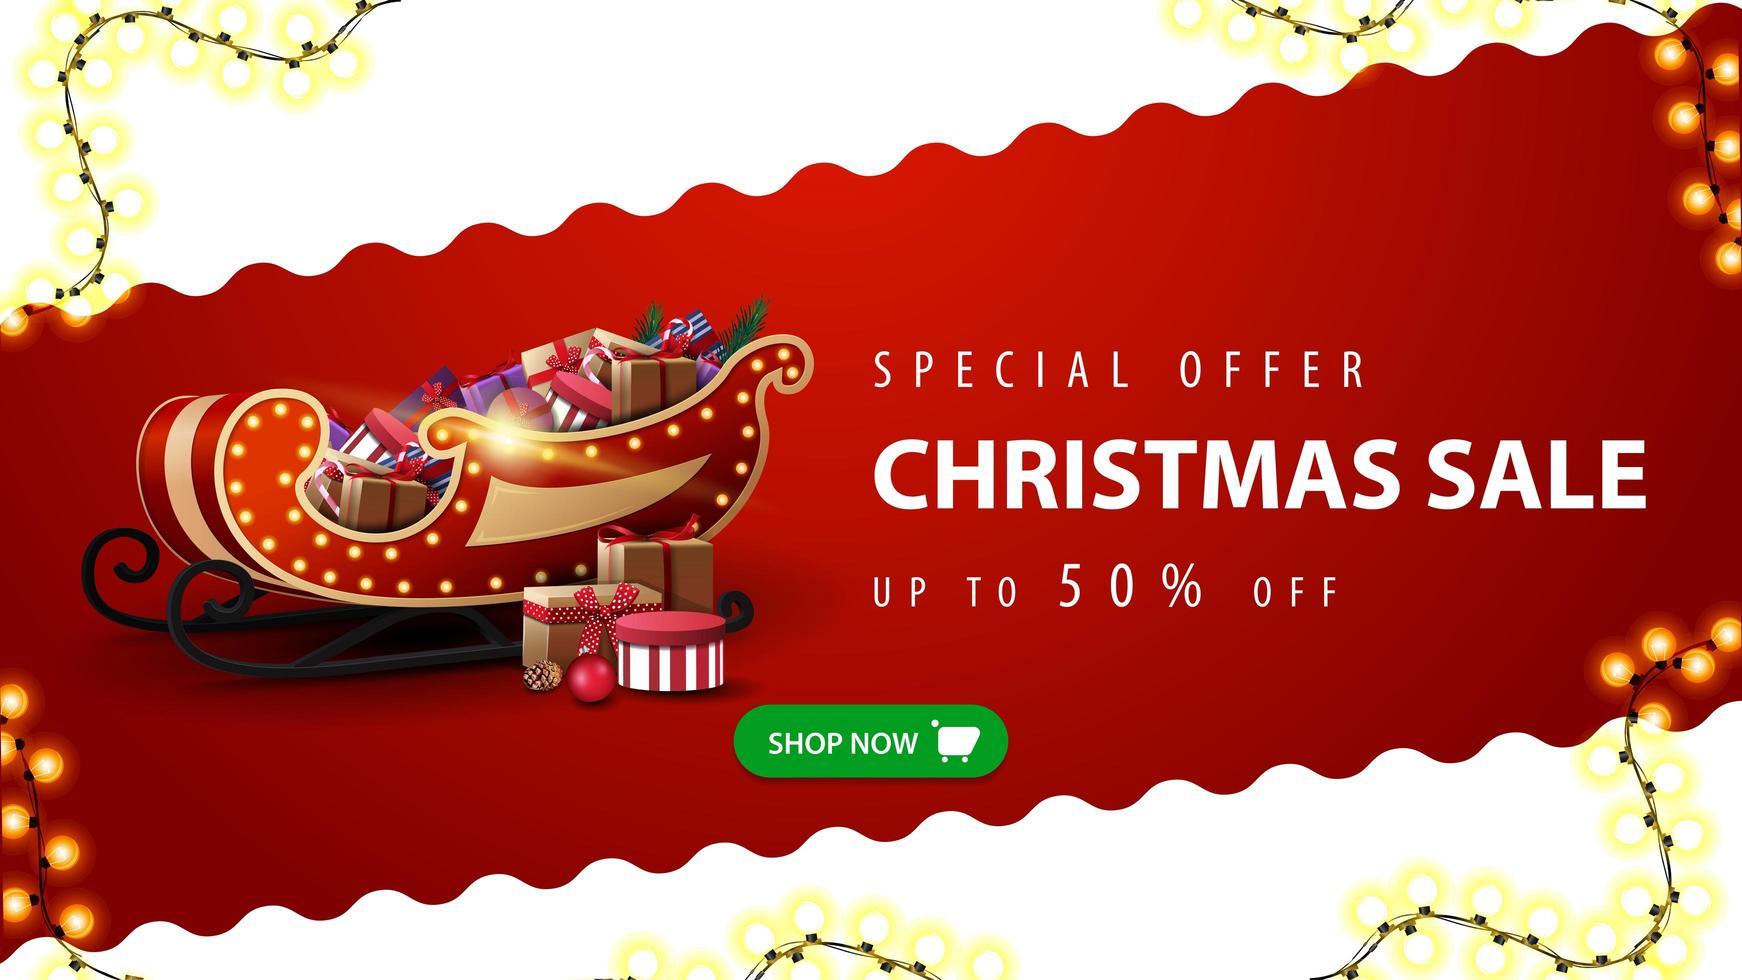 Special offer, Christmas sale, up to 50 off, red and white discount banner with wavy diagonal line, green button and Santa Sleigh with presents vector